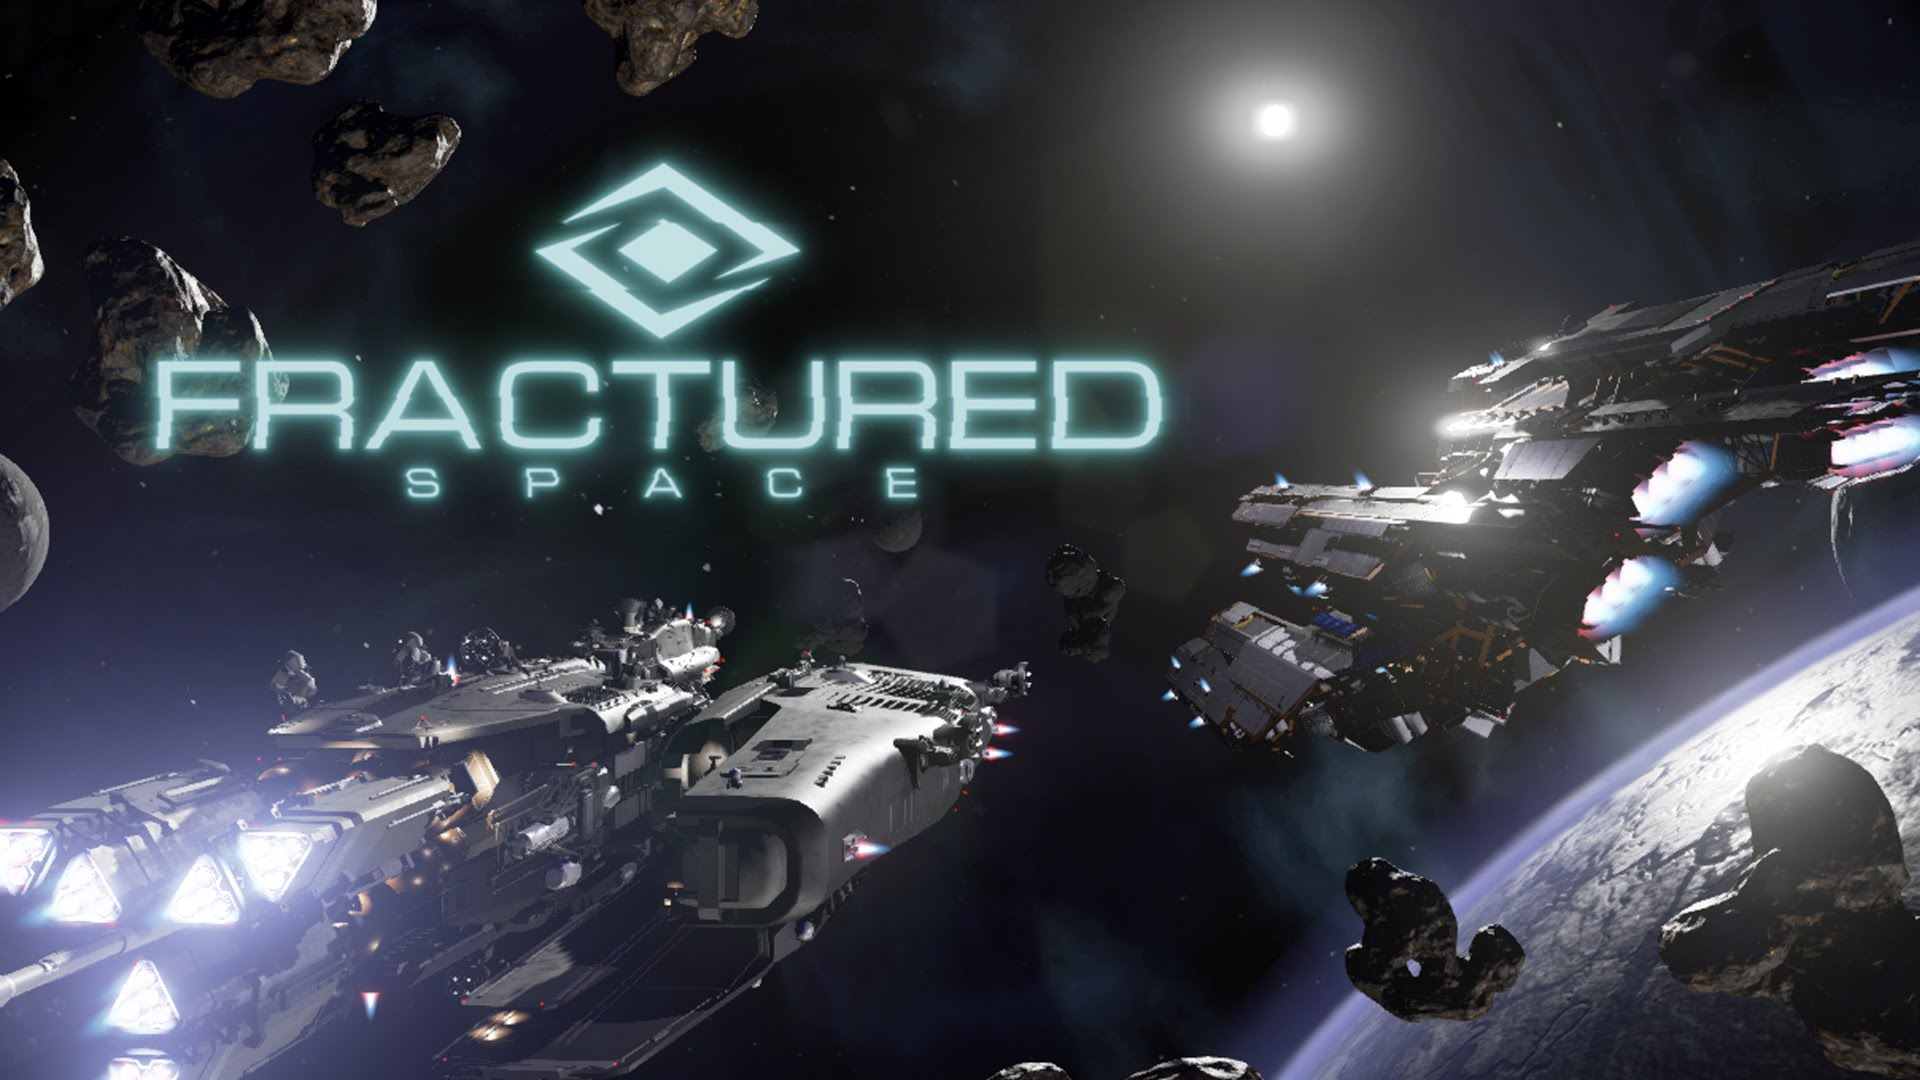 Fractured space matchmaking — pic 1